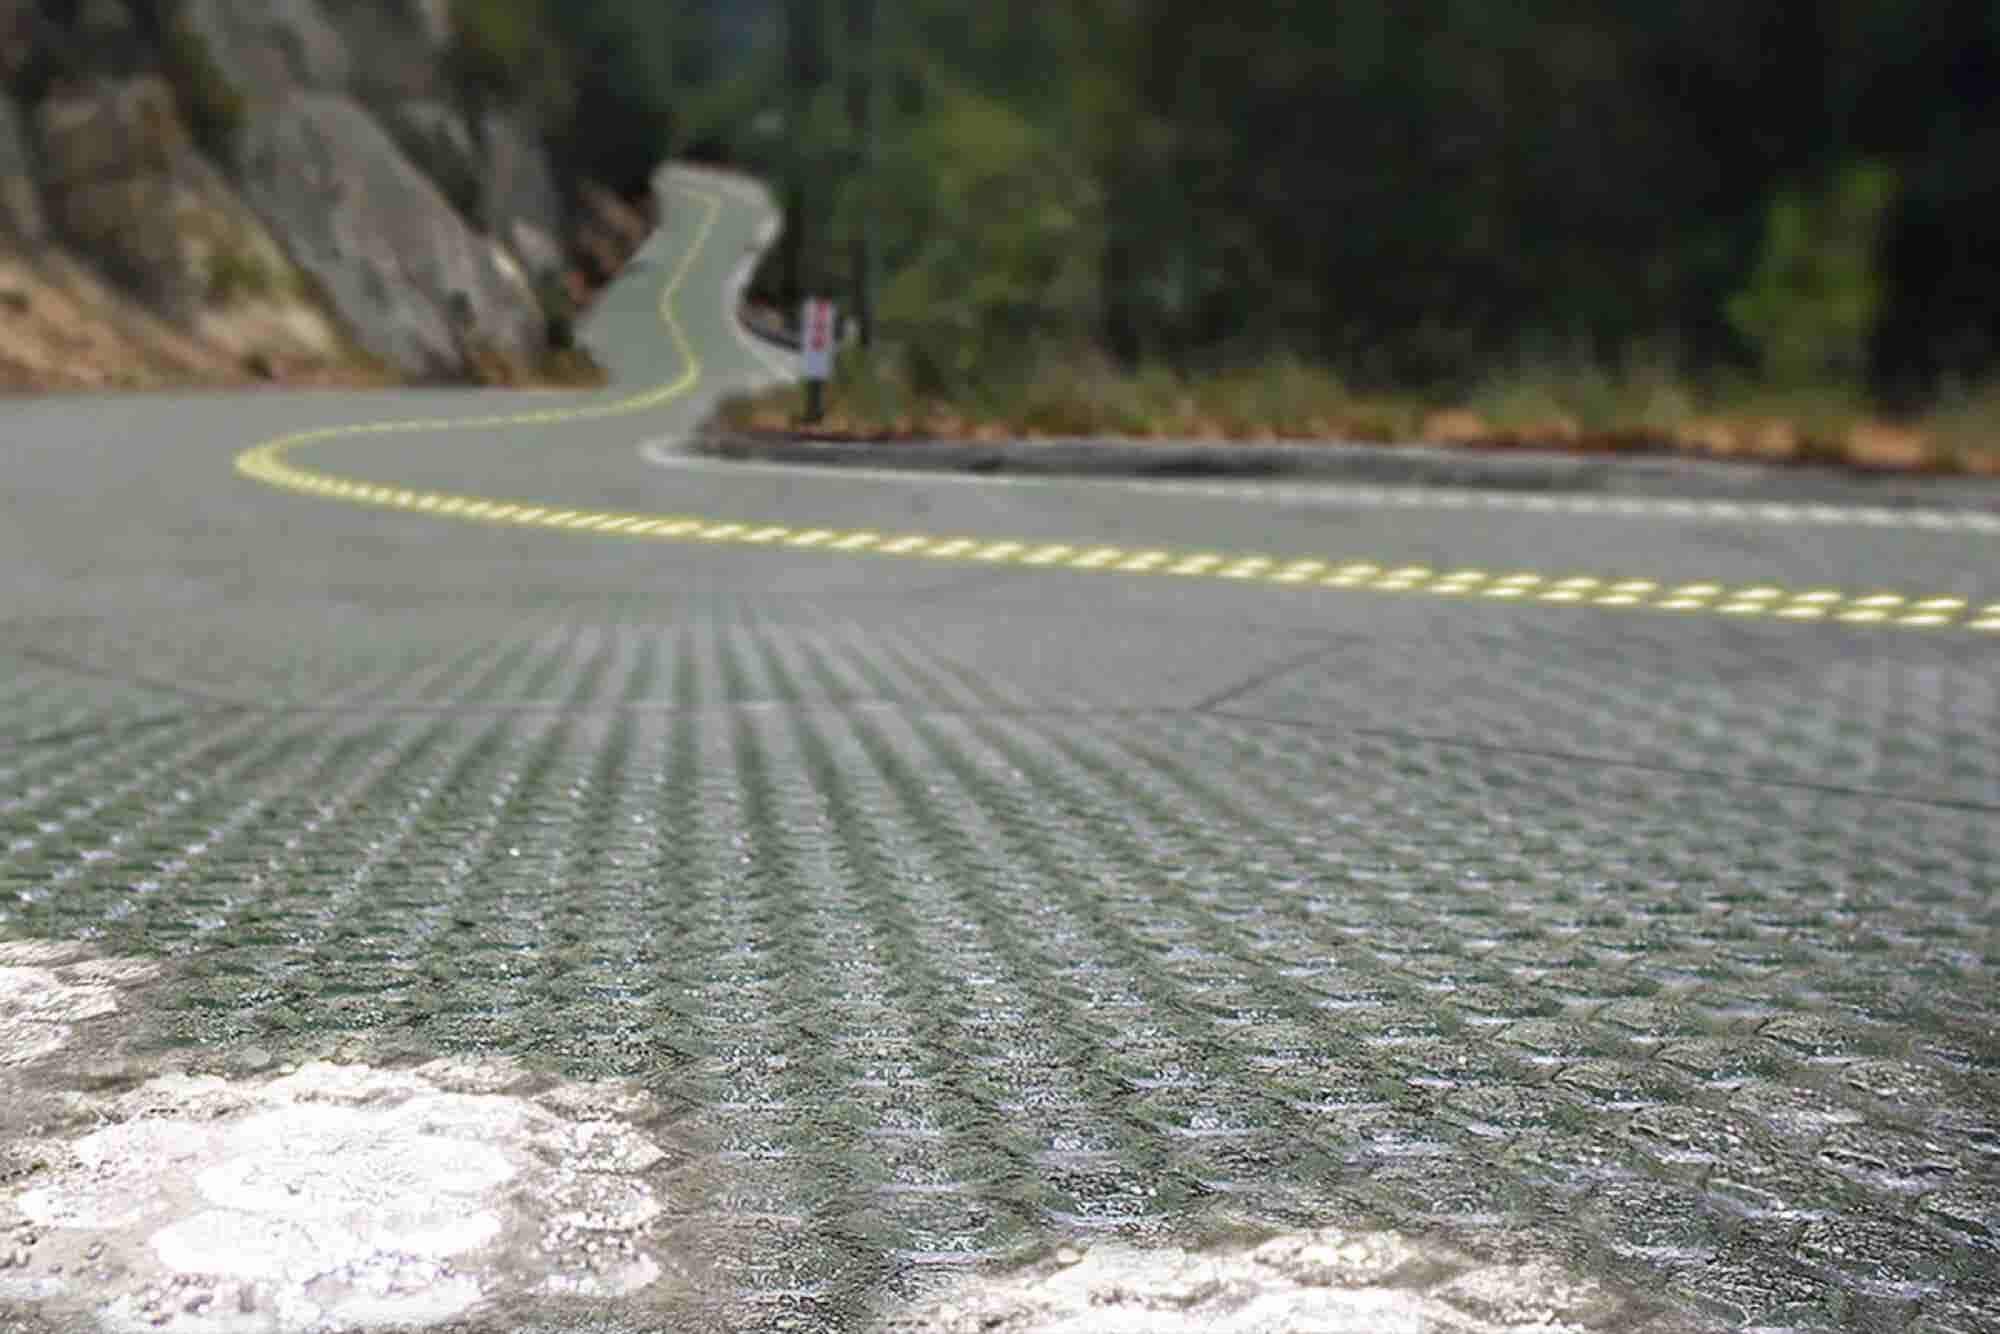 A Highway That Will Produce Power Instead of Roadkill